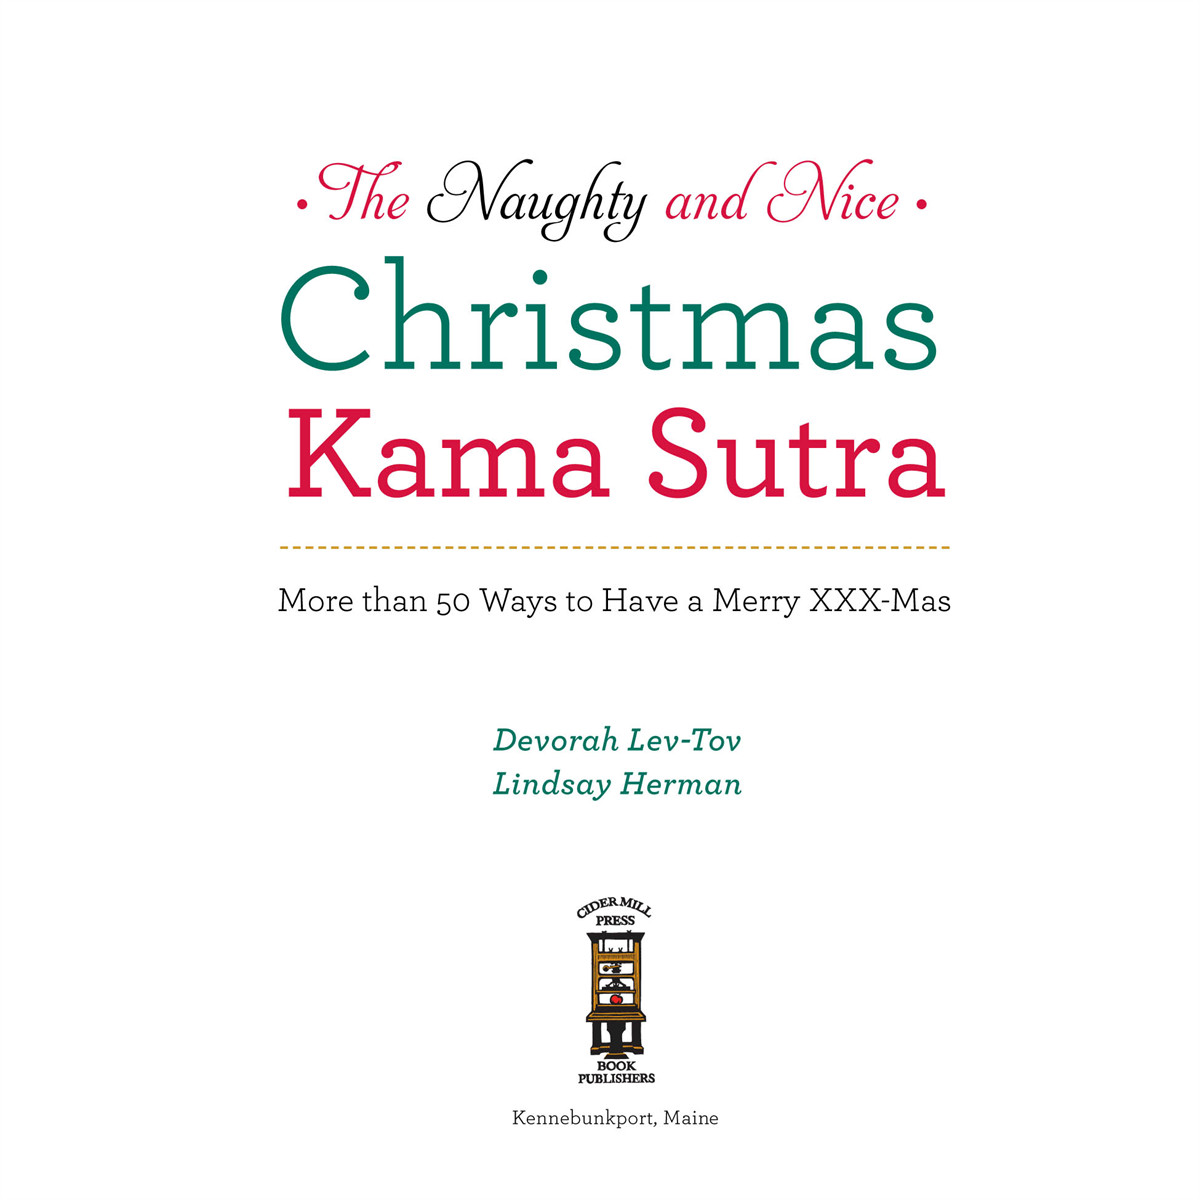 The-naughty-and-nice-christmas-kama-sutra-9781604332407.in01